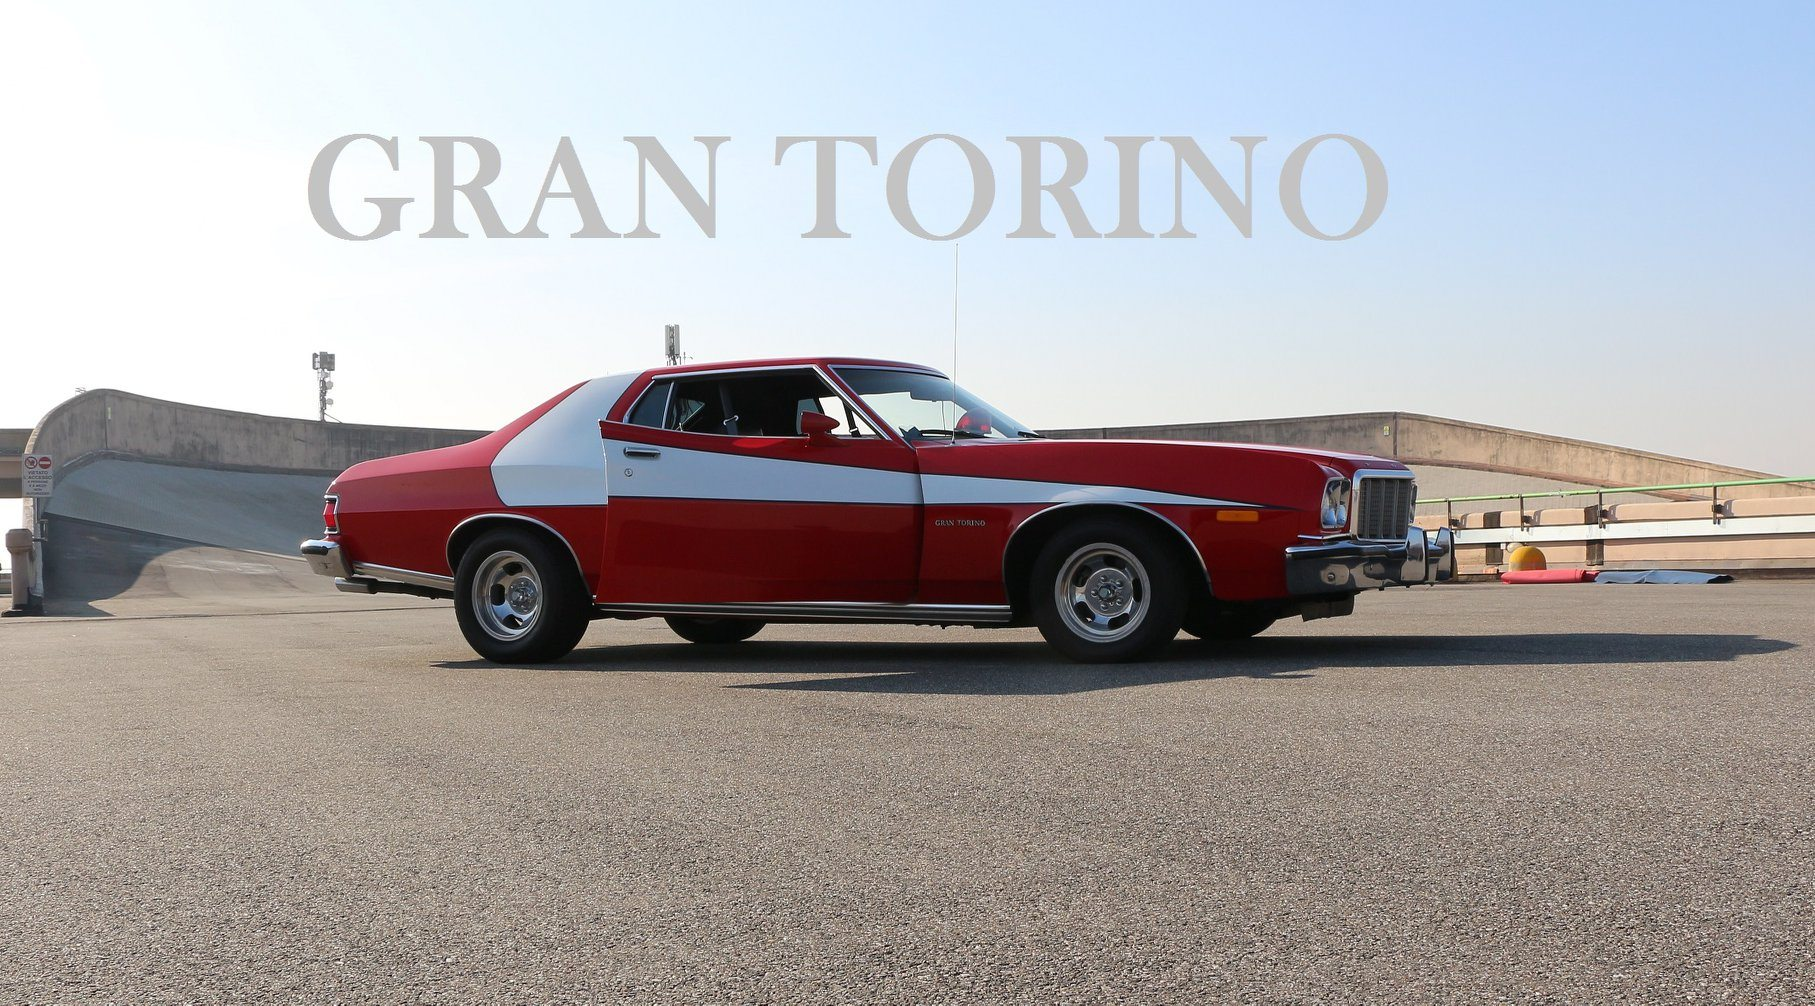 location FORD GRAN TORINO Starsky et Hutch, Photo 1